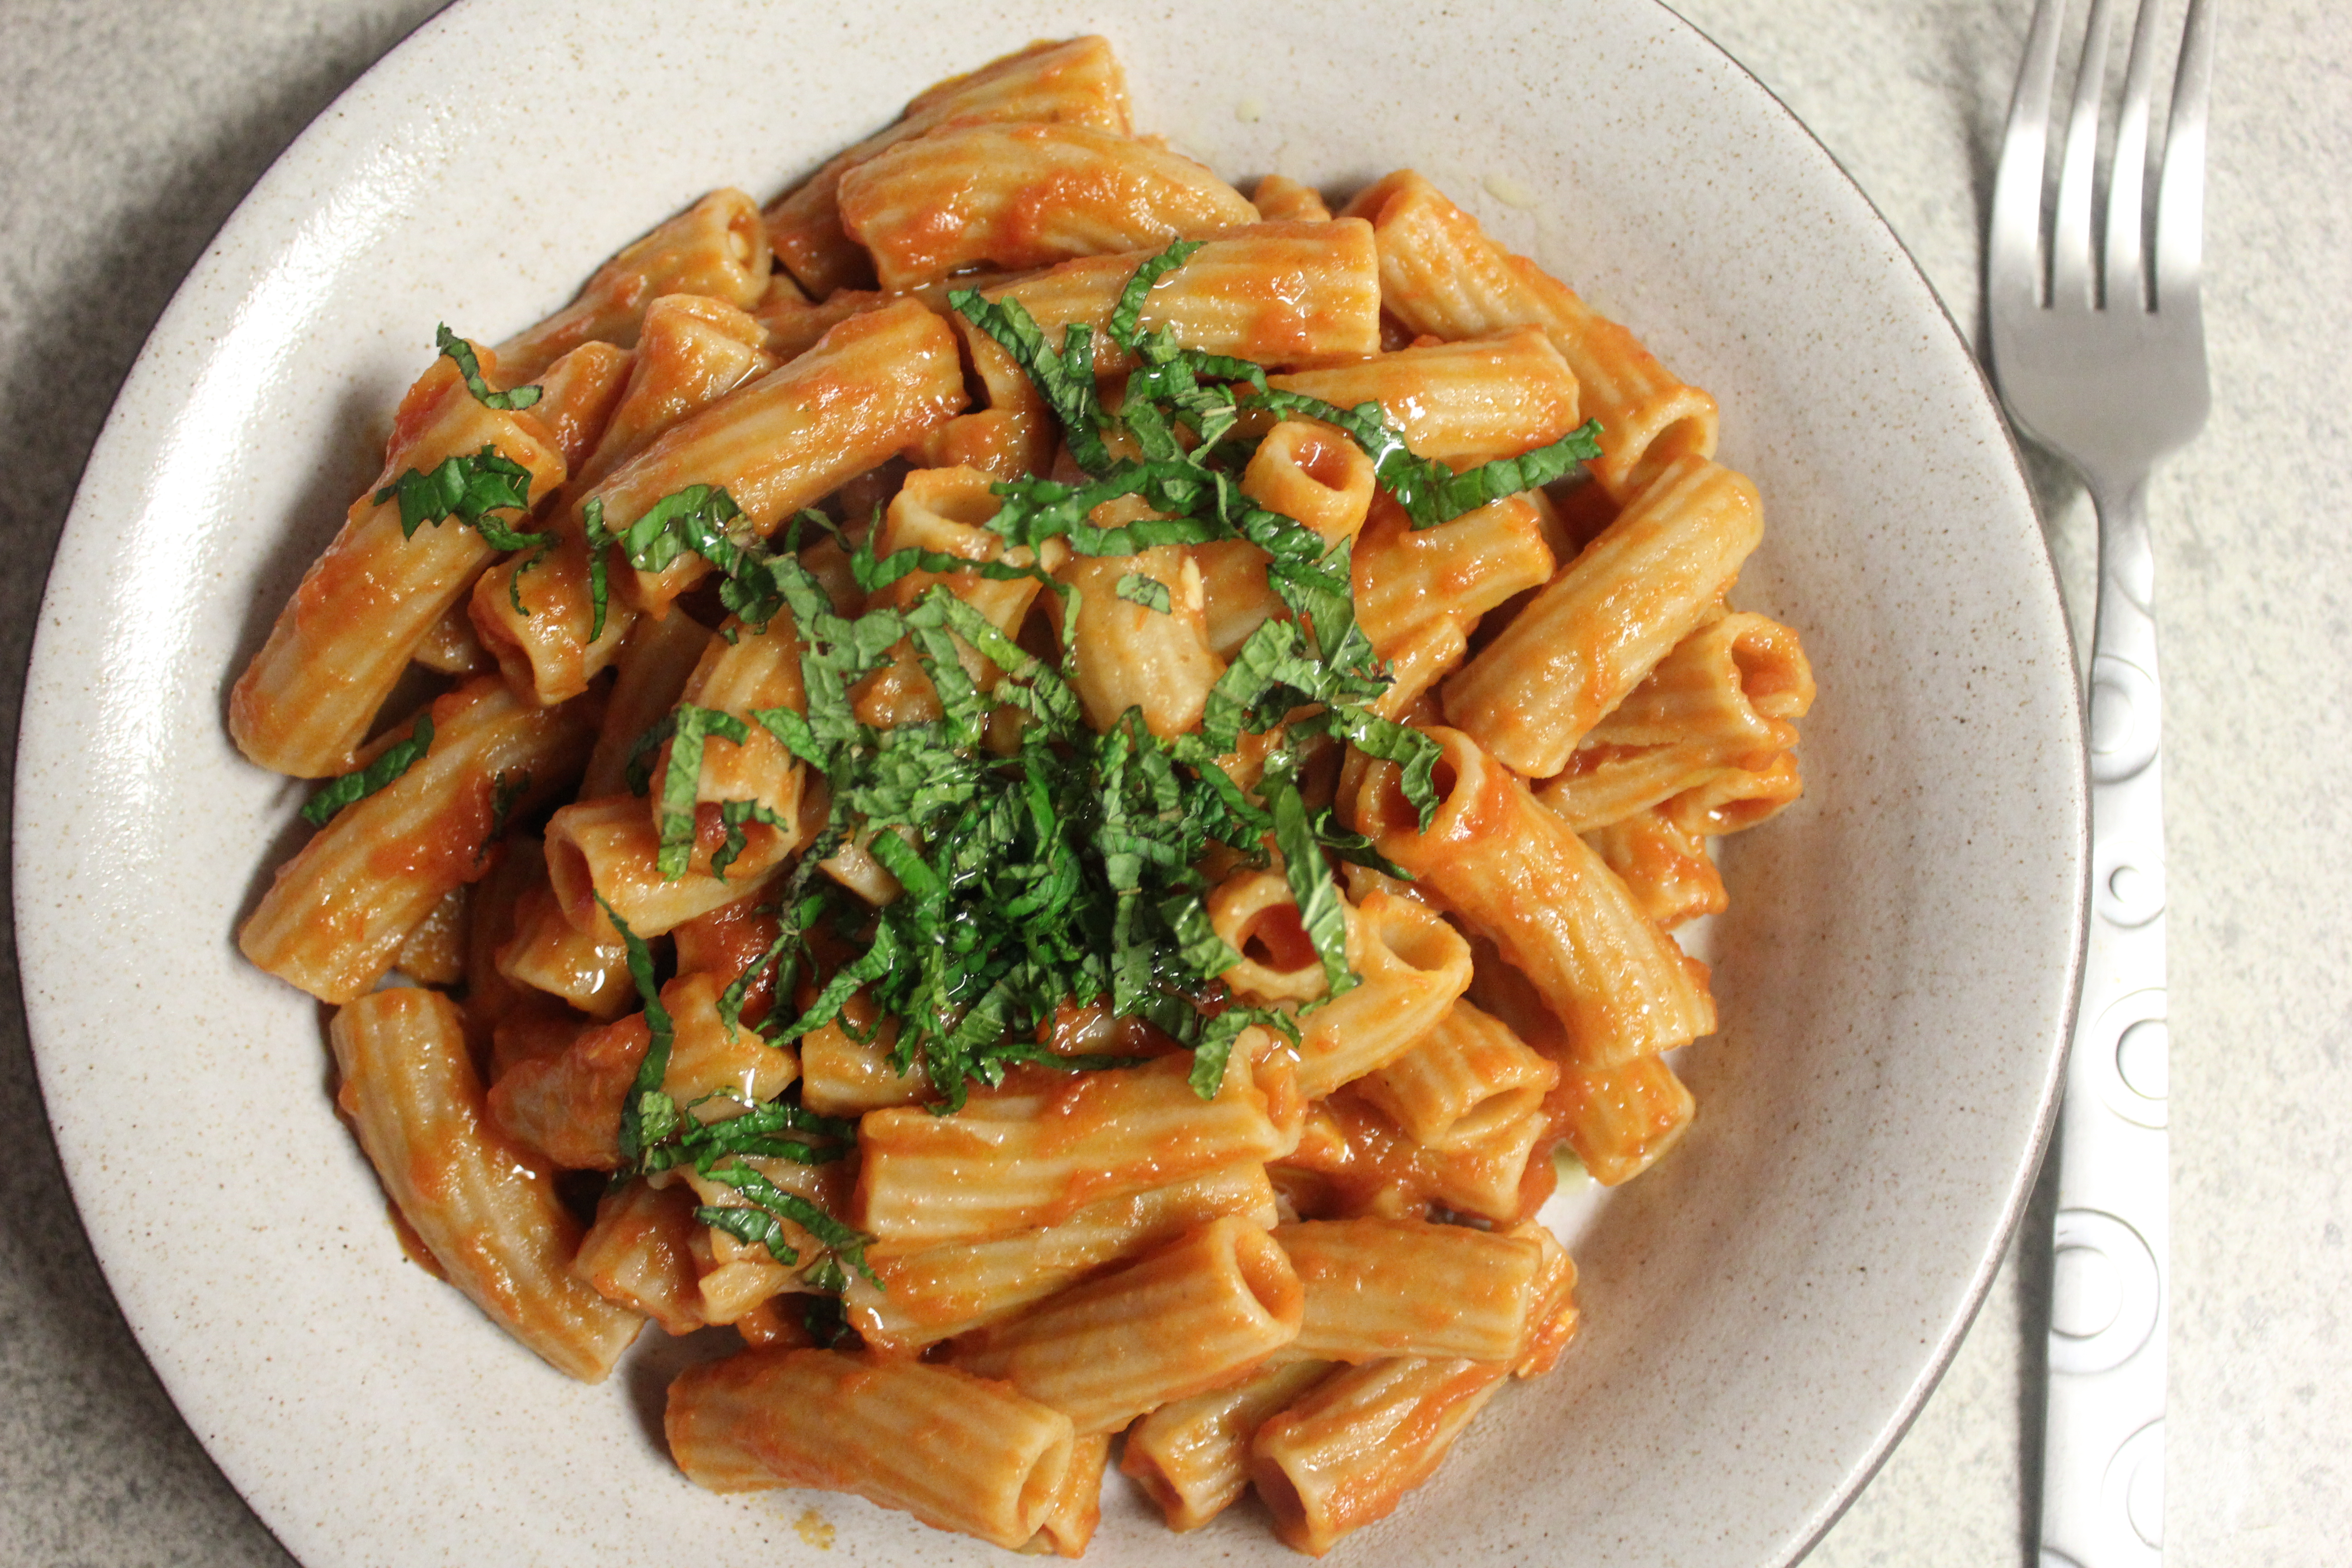 A plate of pasta with tomato sauce made using flavored olive oil